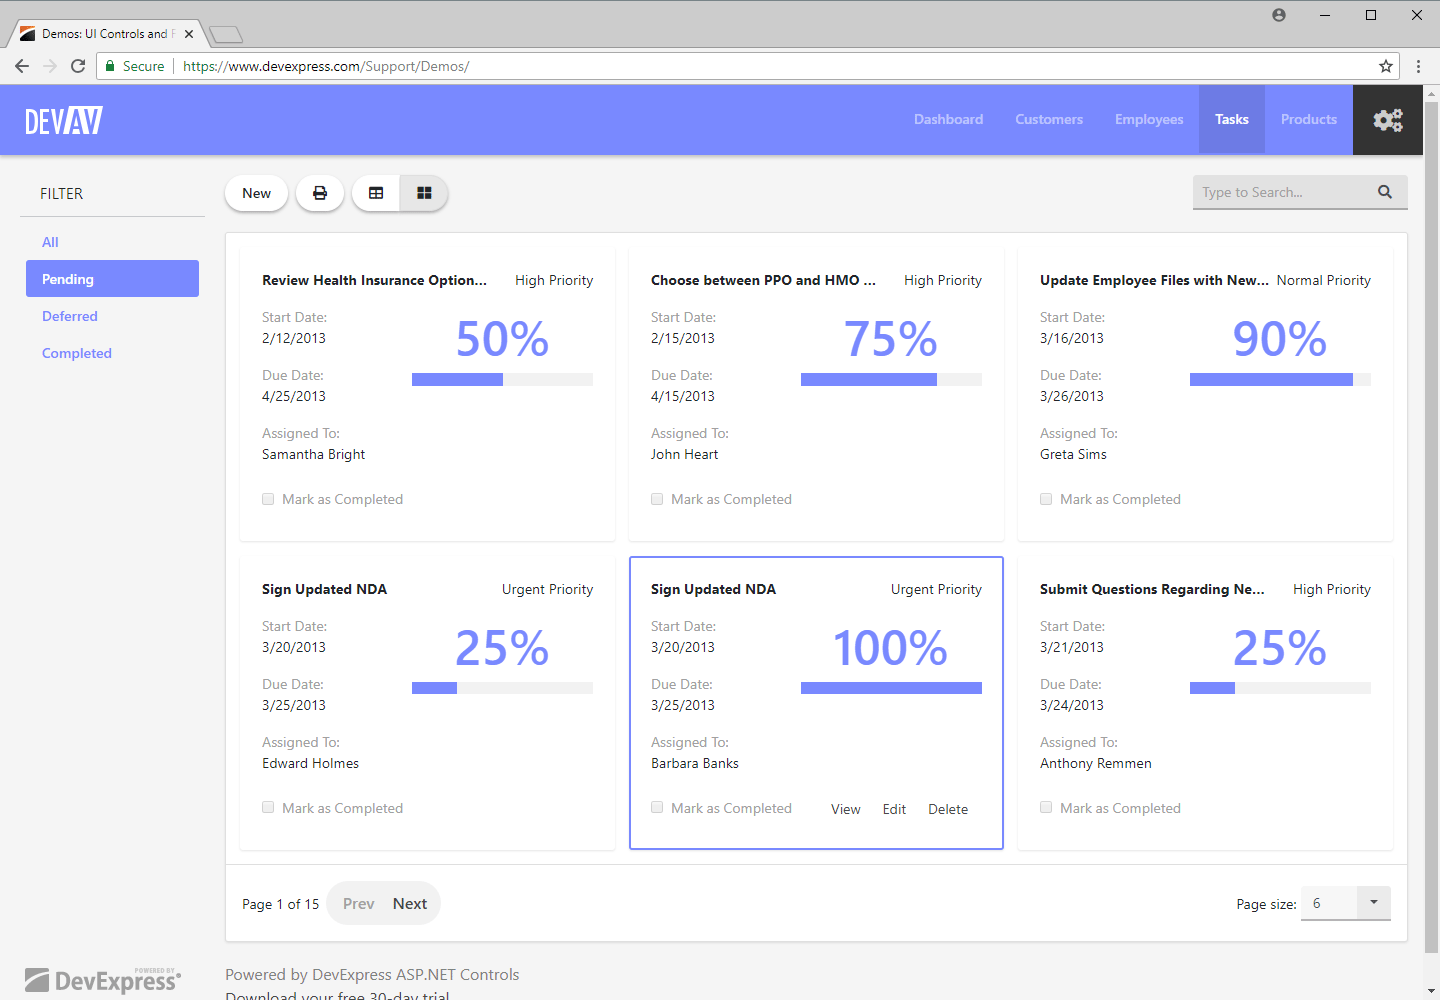 ASP.NET Bootstrap Web Forms App - CardView Control